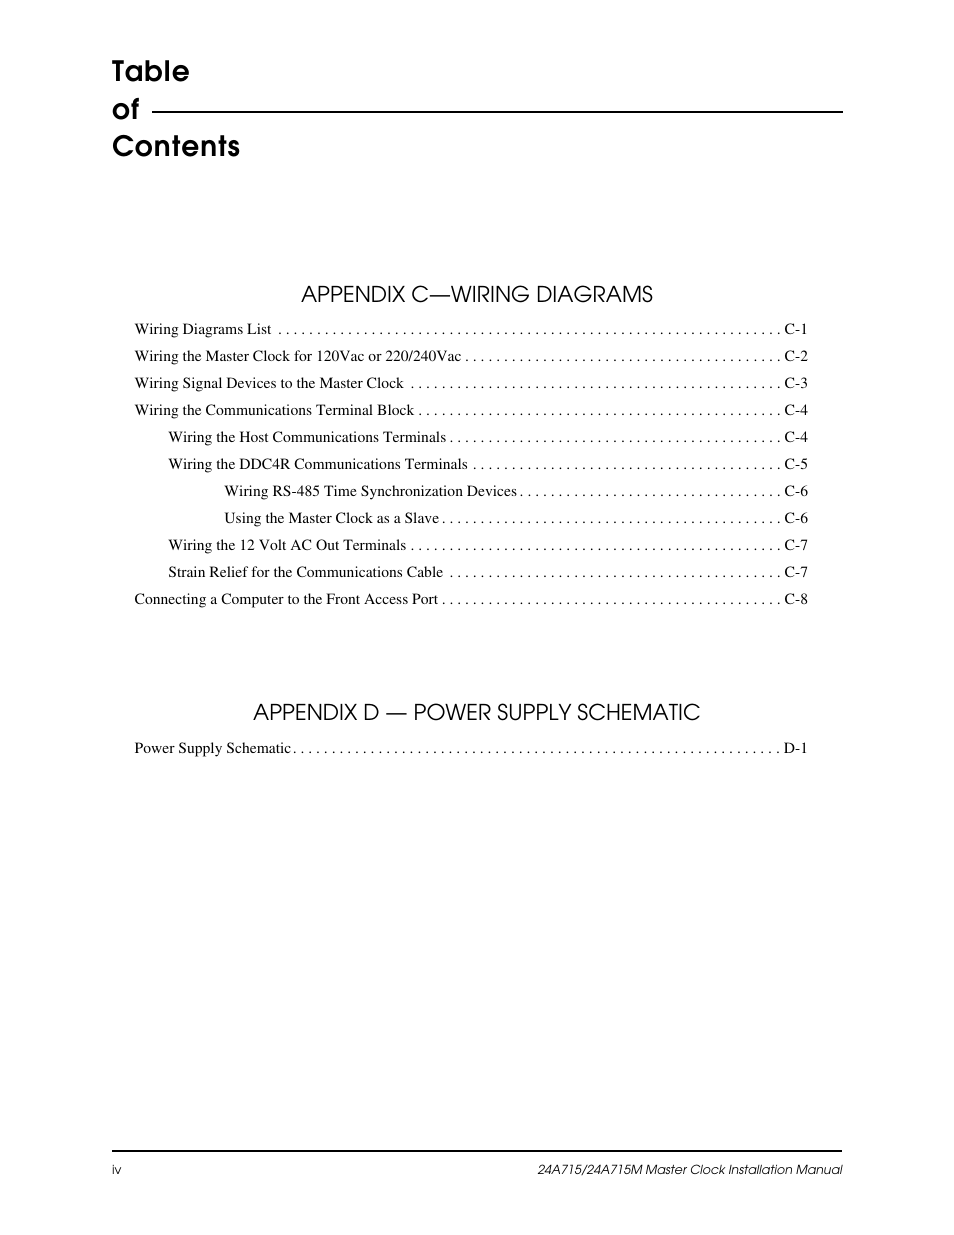 lathem dukane 24a715 user manual page 12 86 also for dukanelathem dukane 24a715 user manual page 12 86 also for dukane 24a715m